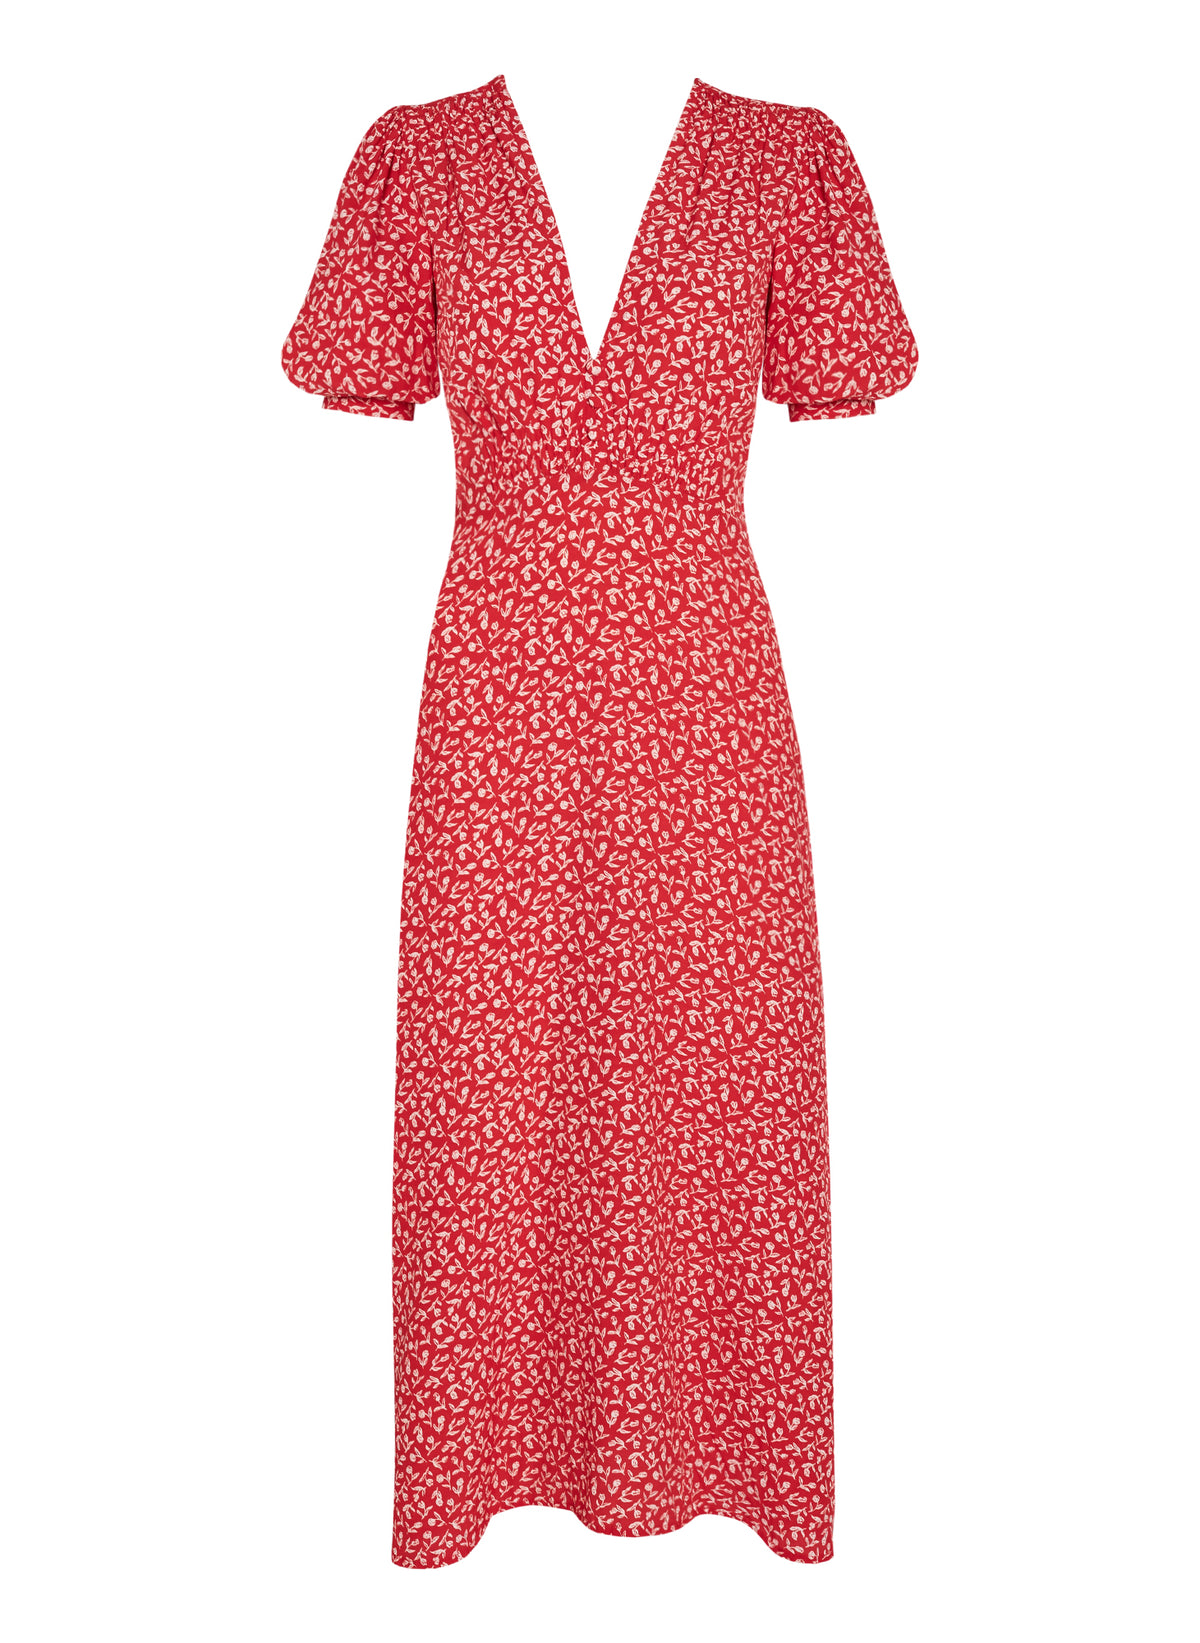 Faithfull The Brand - Sonja Midi Dress | Floral/Red